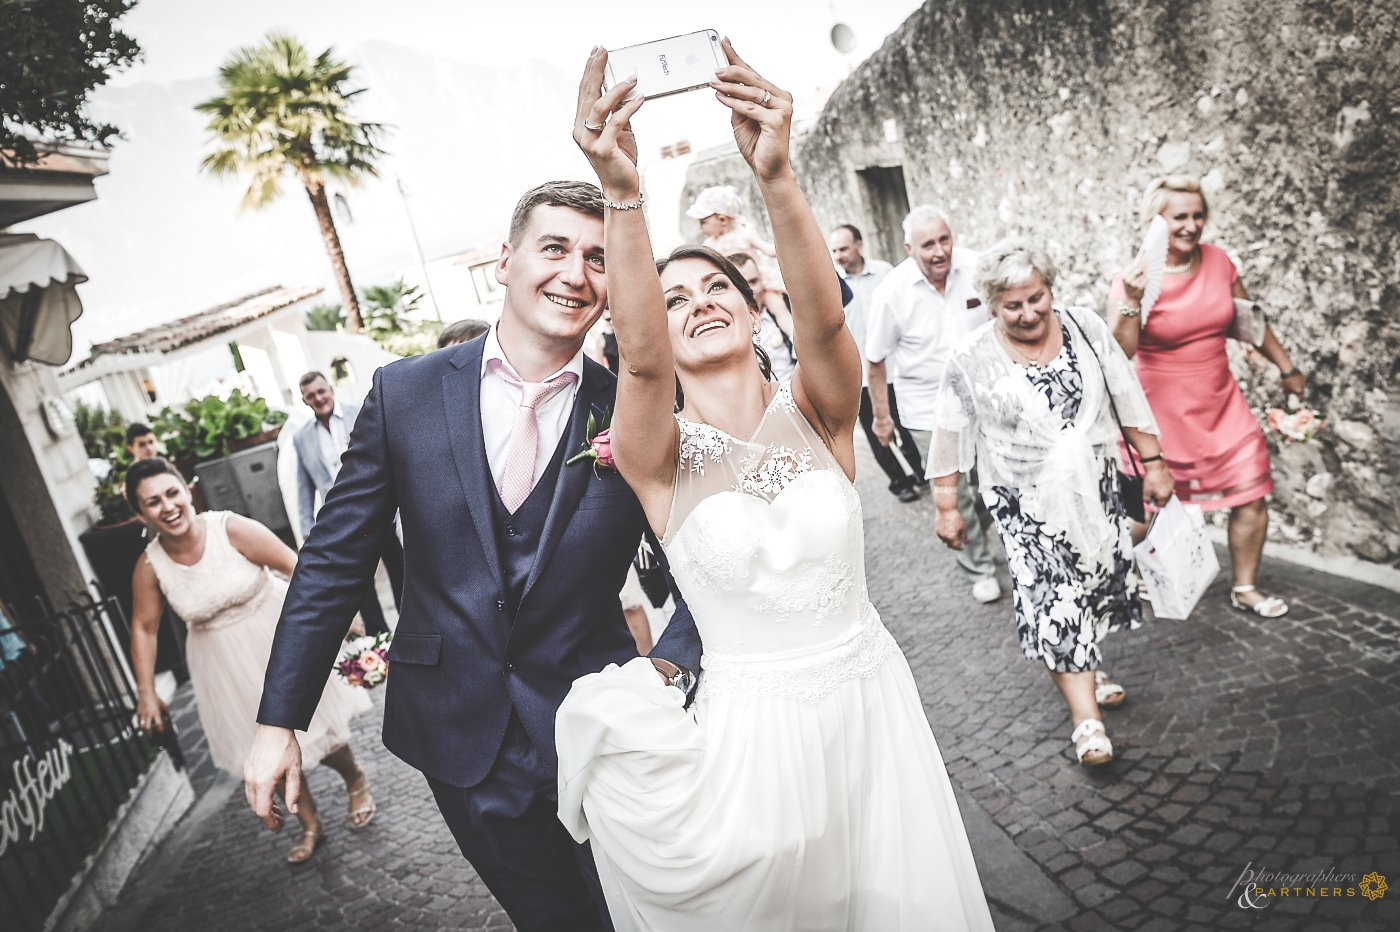 photography_weddings_malcesine_15.jpg